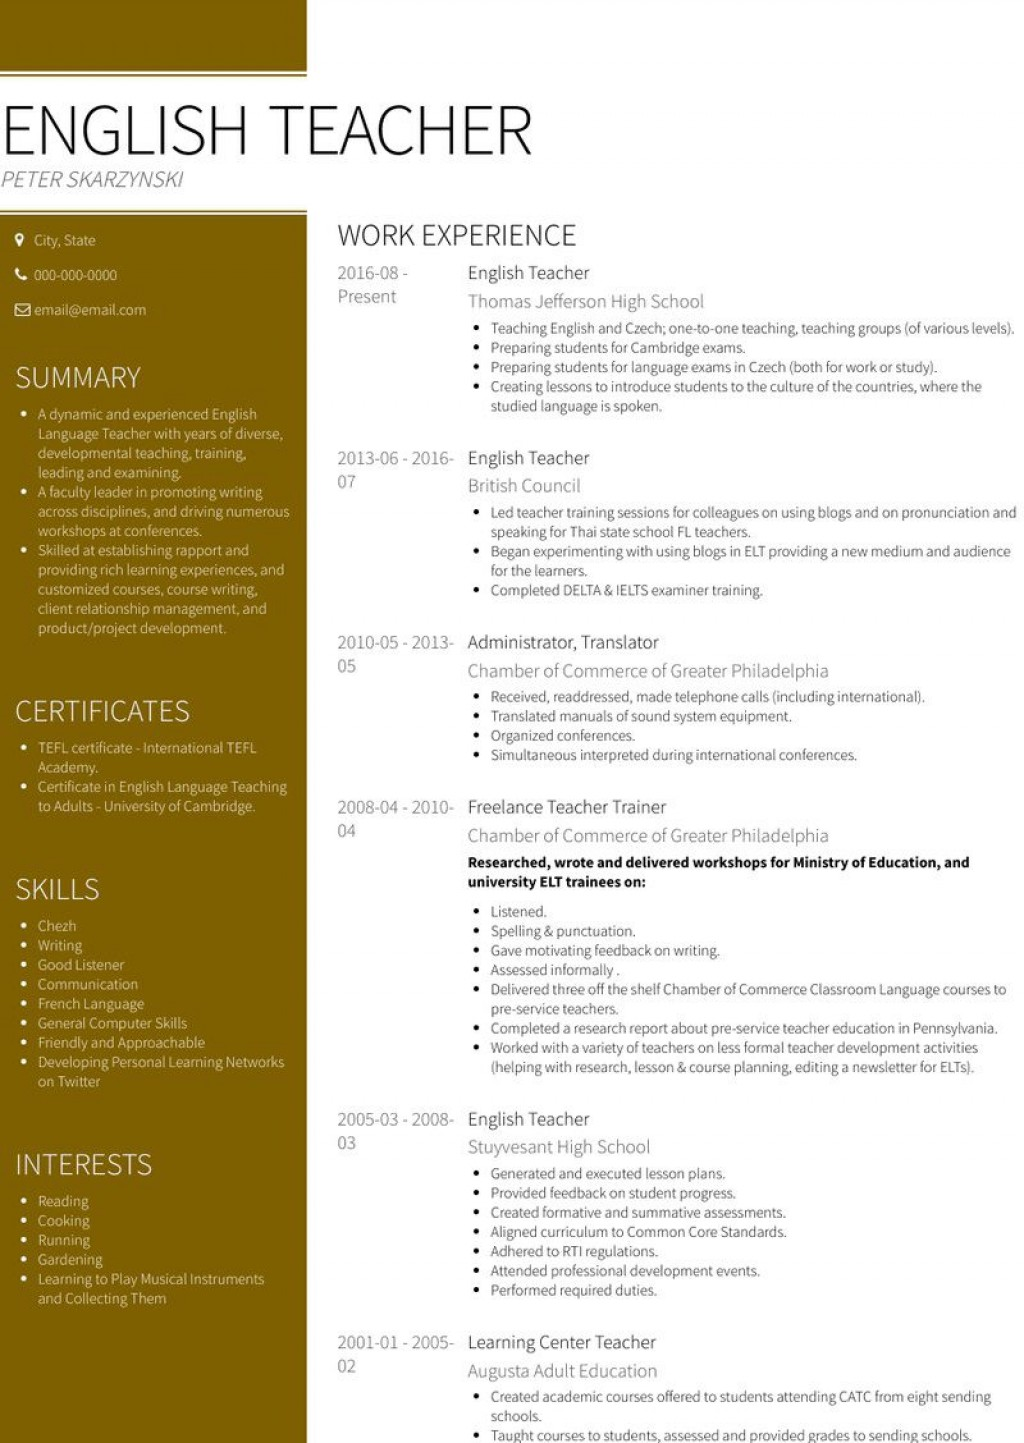 007 Archaicawful Resume Template For Teacher High Resolution  Australia Microsoft Word SampleLarge